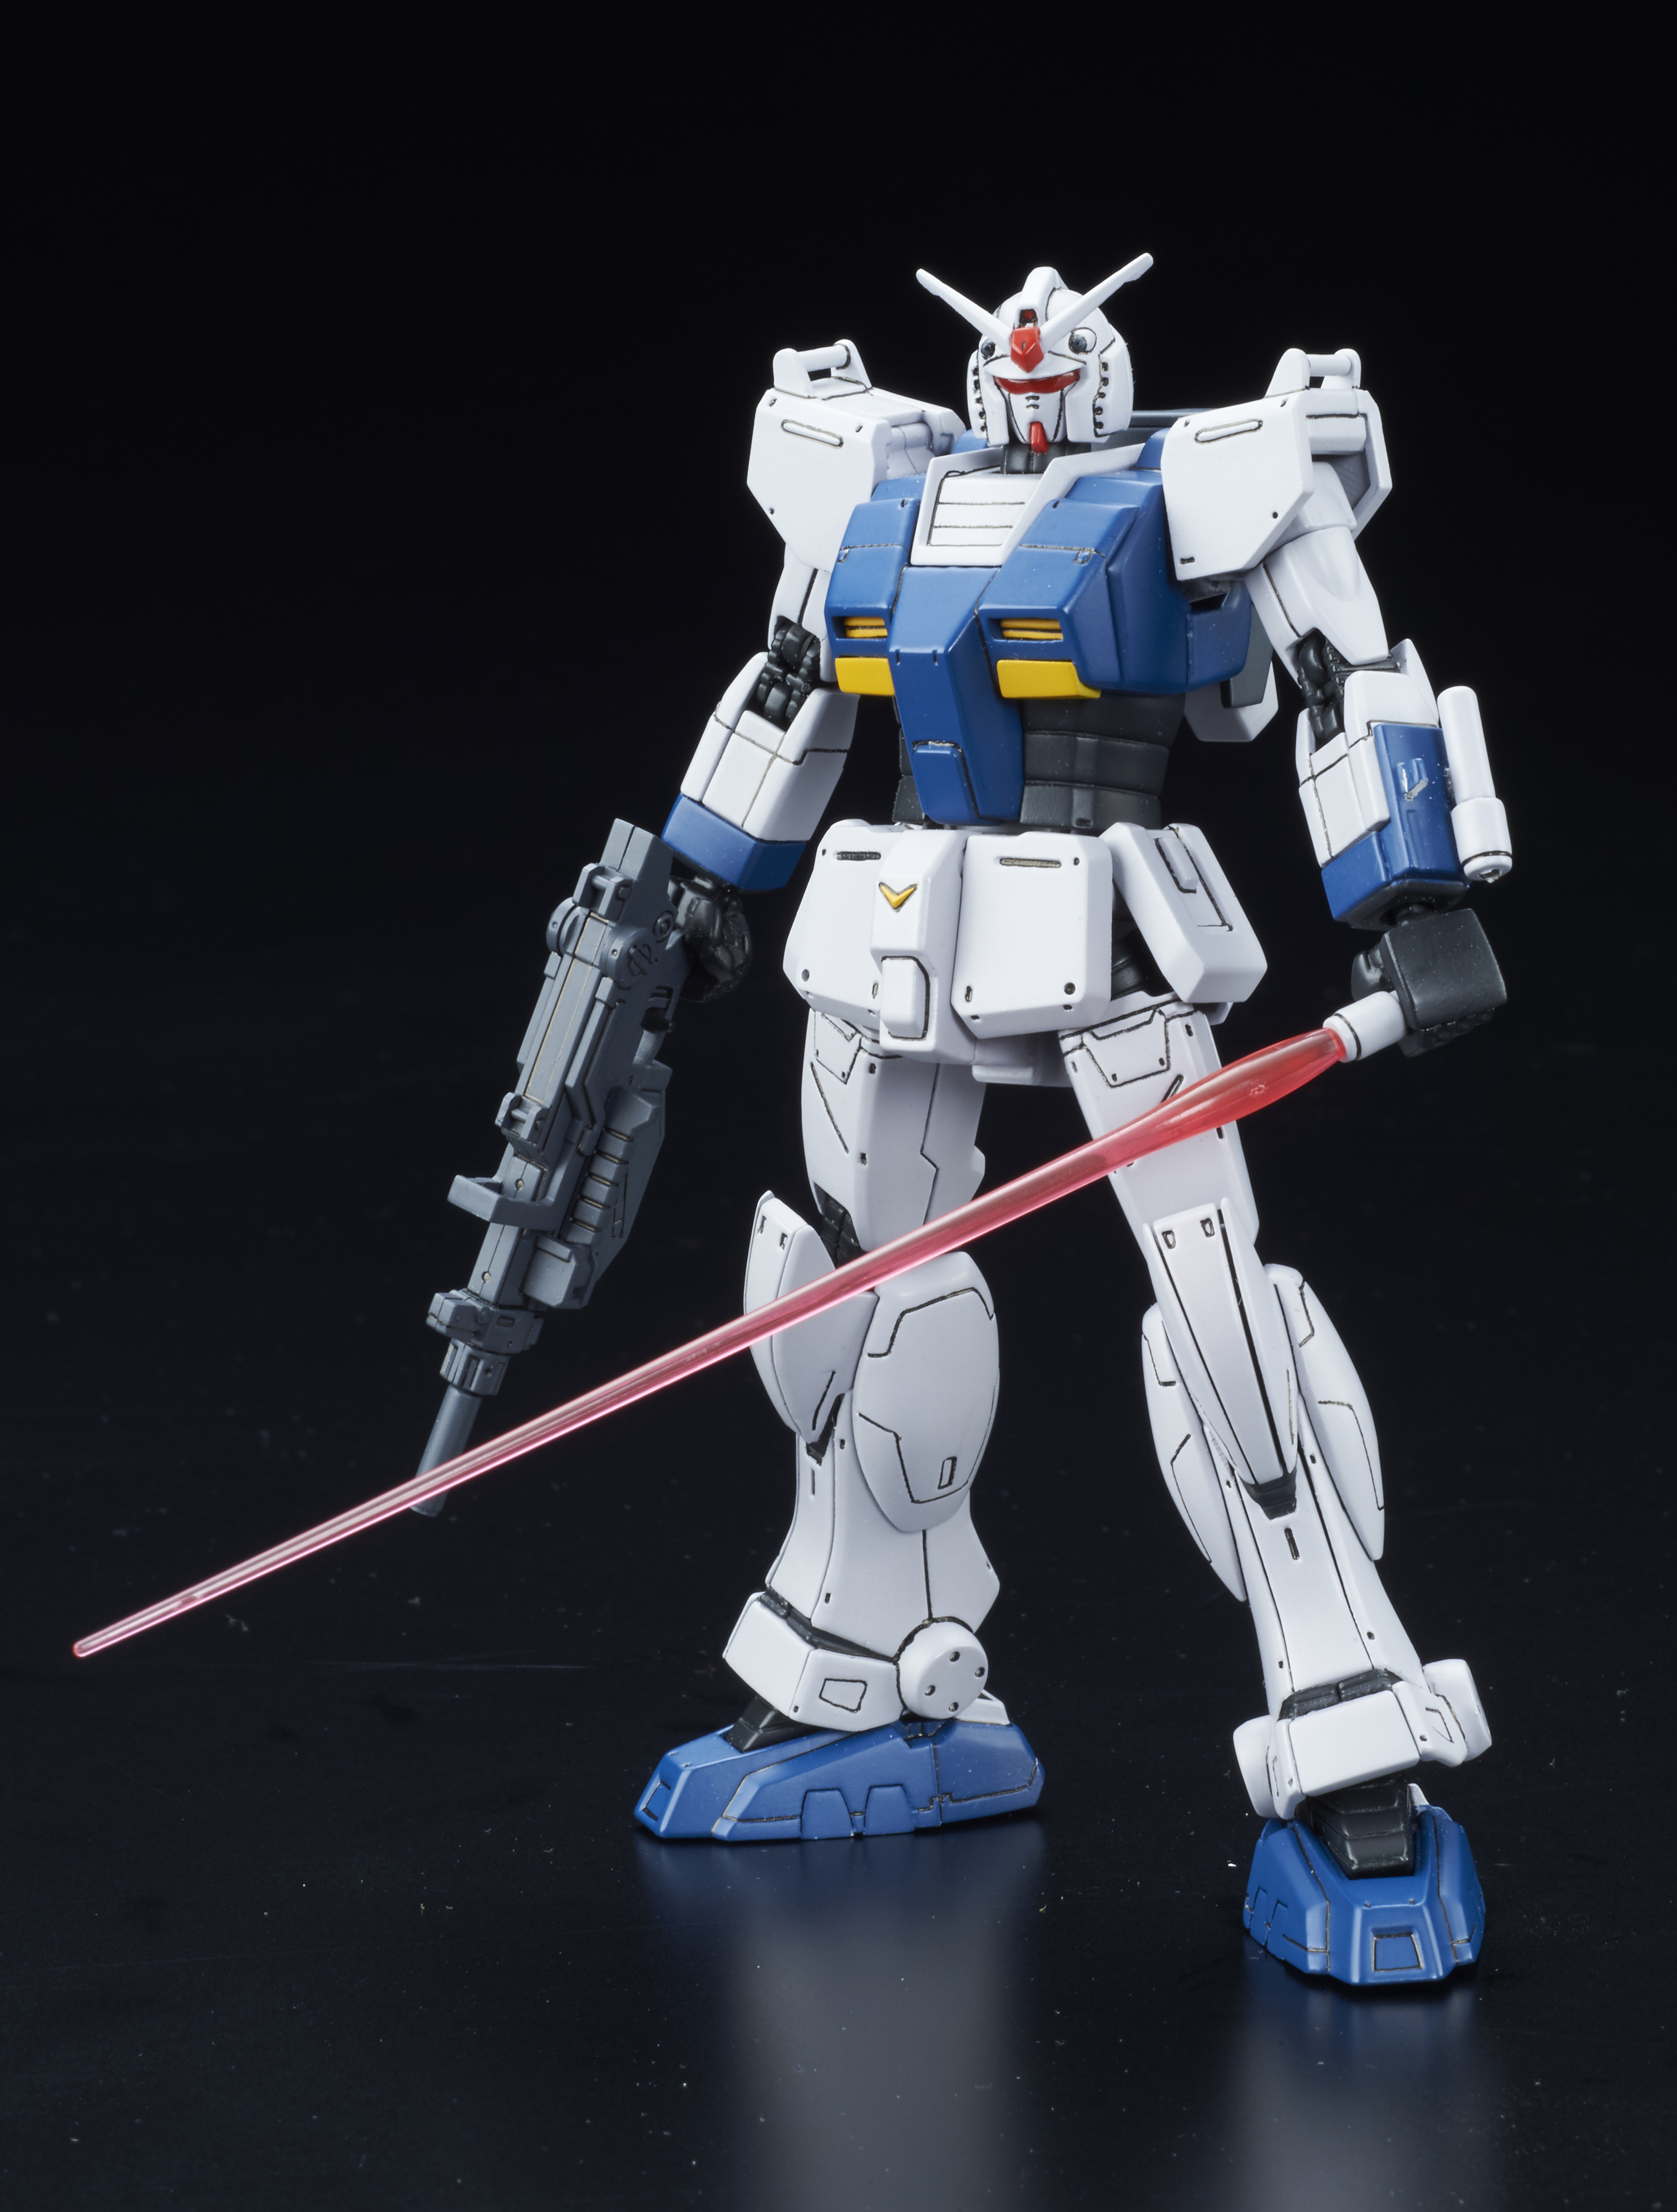 HG 1/144 Gundam The Origin MSD Gundam Ground Type: NEW Official Images, Info Release